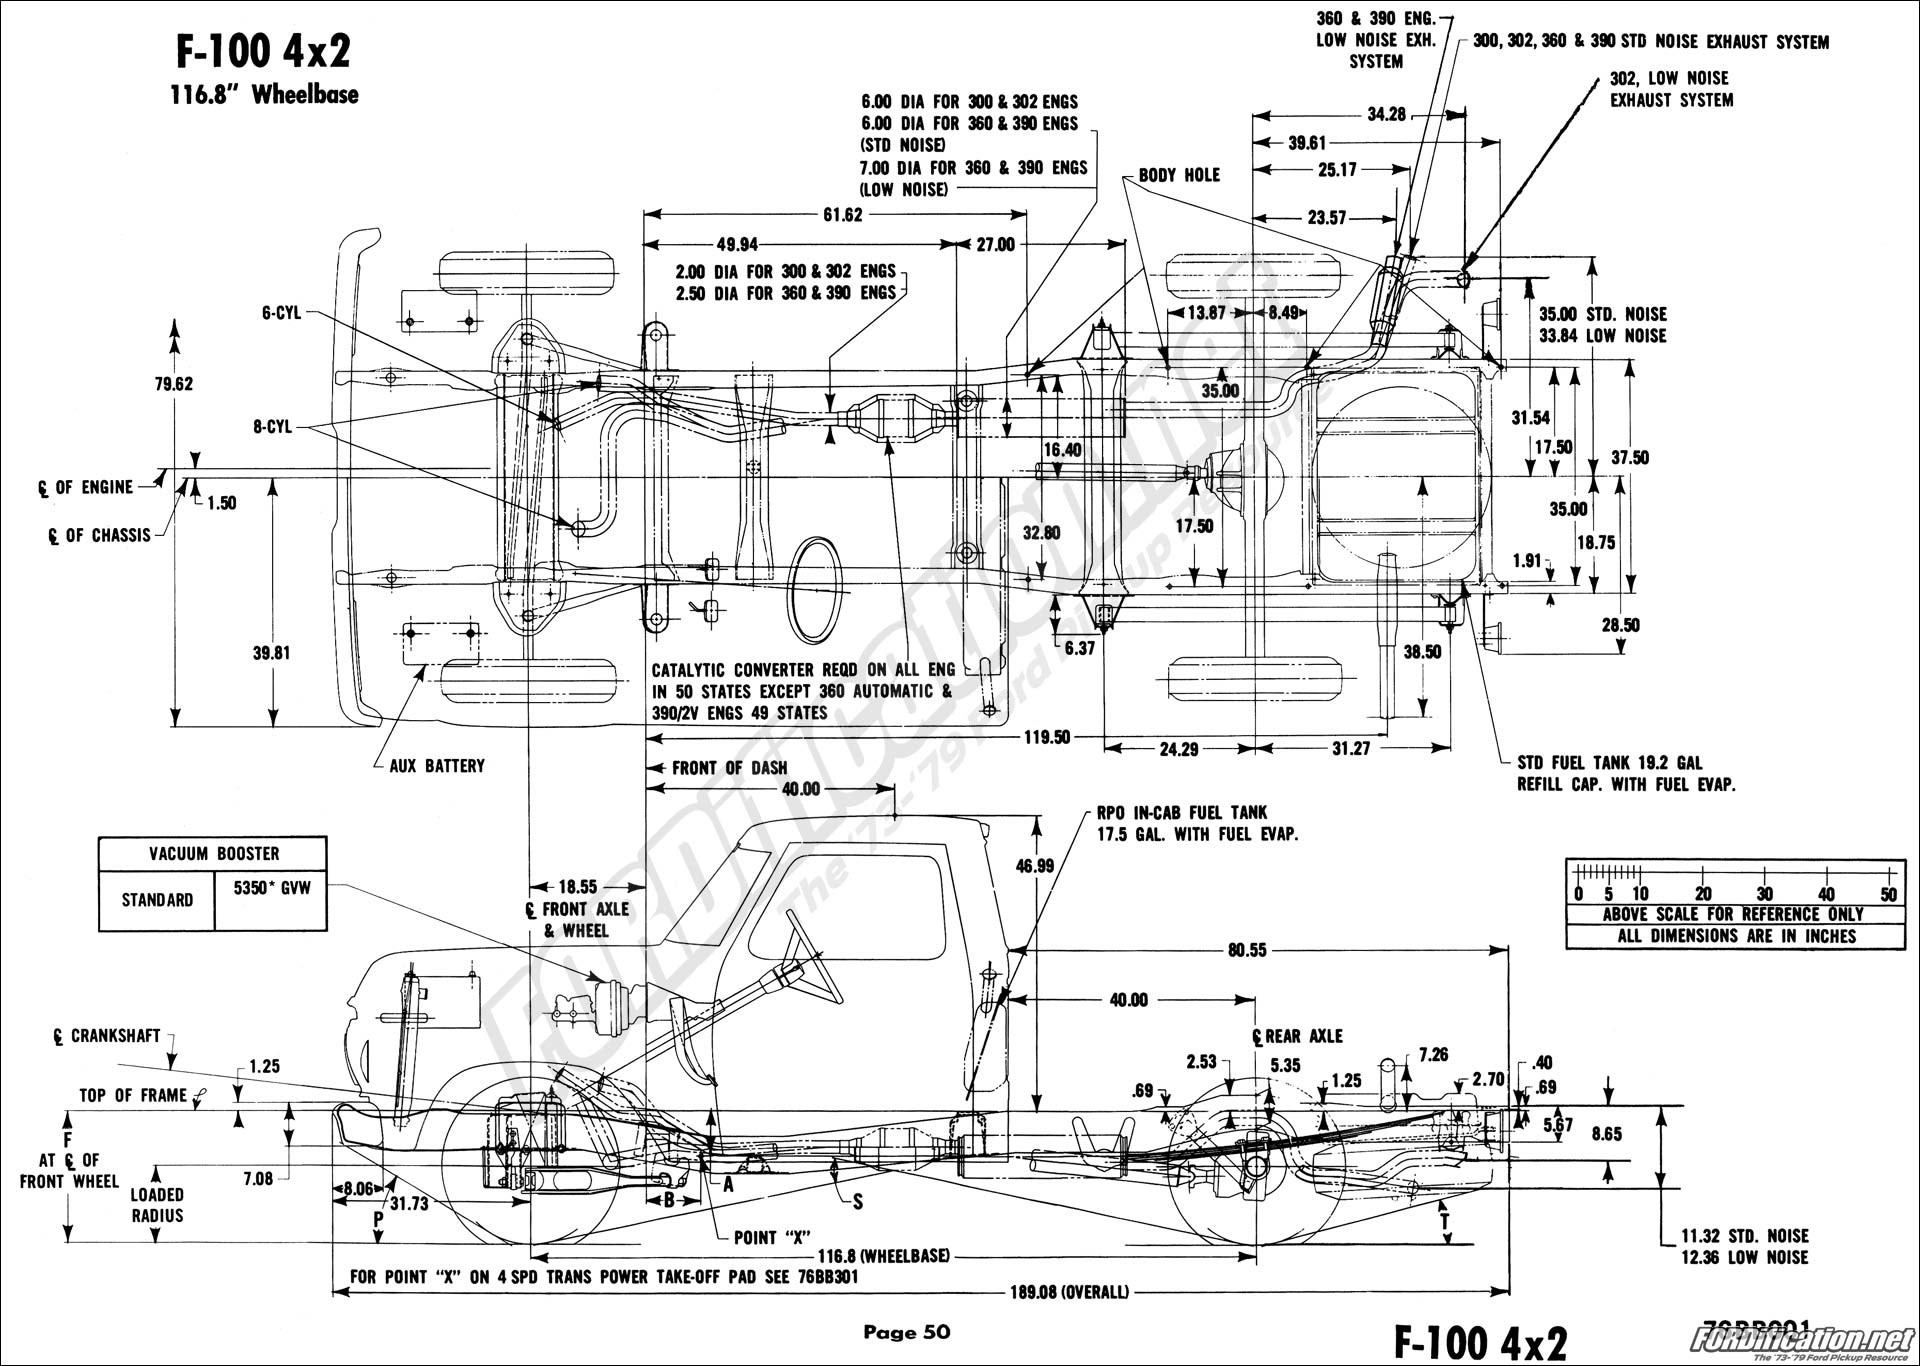 12634 1993 Cadillac Deville Turn Signal Flasher Location In A 1970 moreover 76 Ford F 250 Wiring Diagram further 70 Gto Wiring Diagram together with Dodge Dakota Suspension Parts Diagram moreover Window Wiring Diagram 2001 Chevy. on 1966 pontiac bonneville